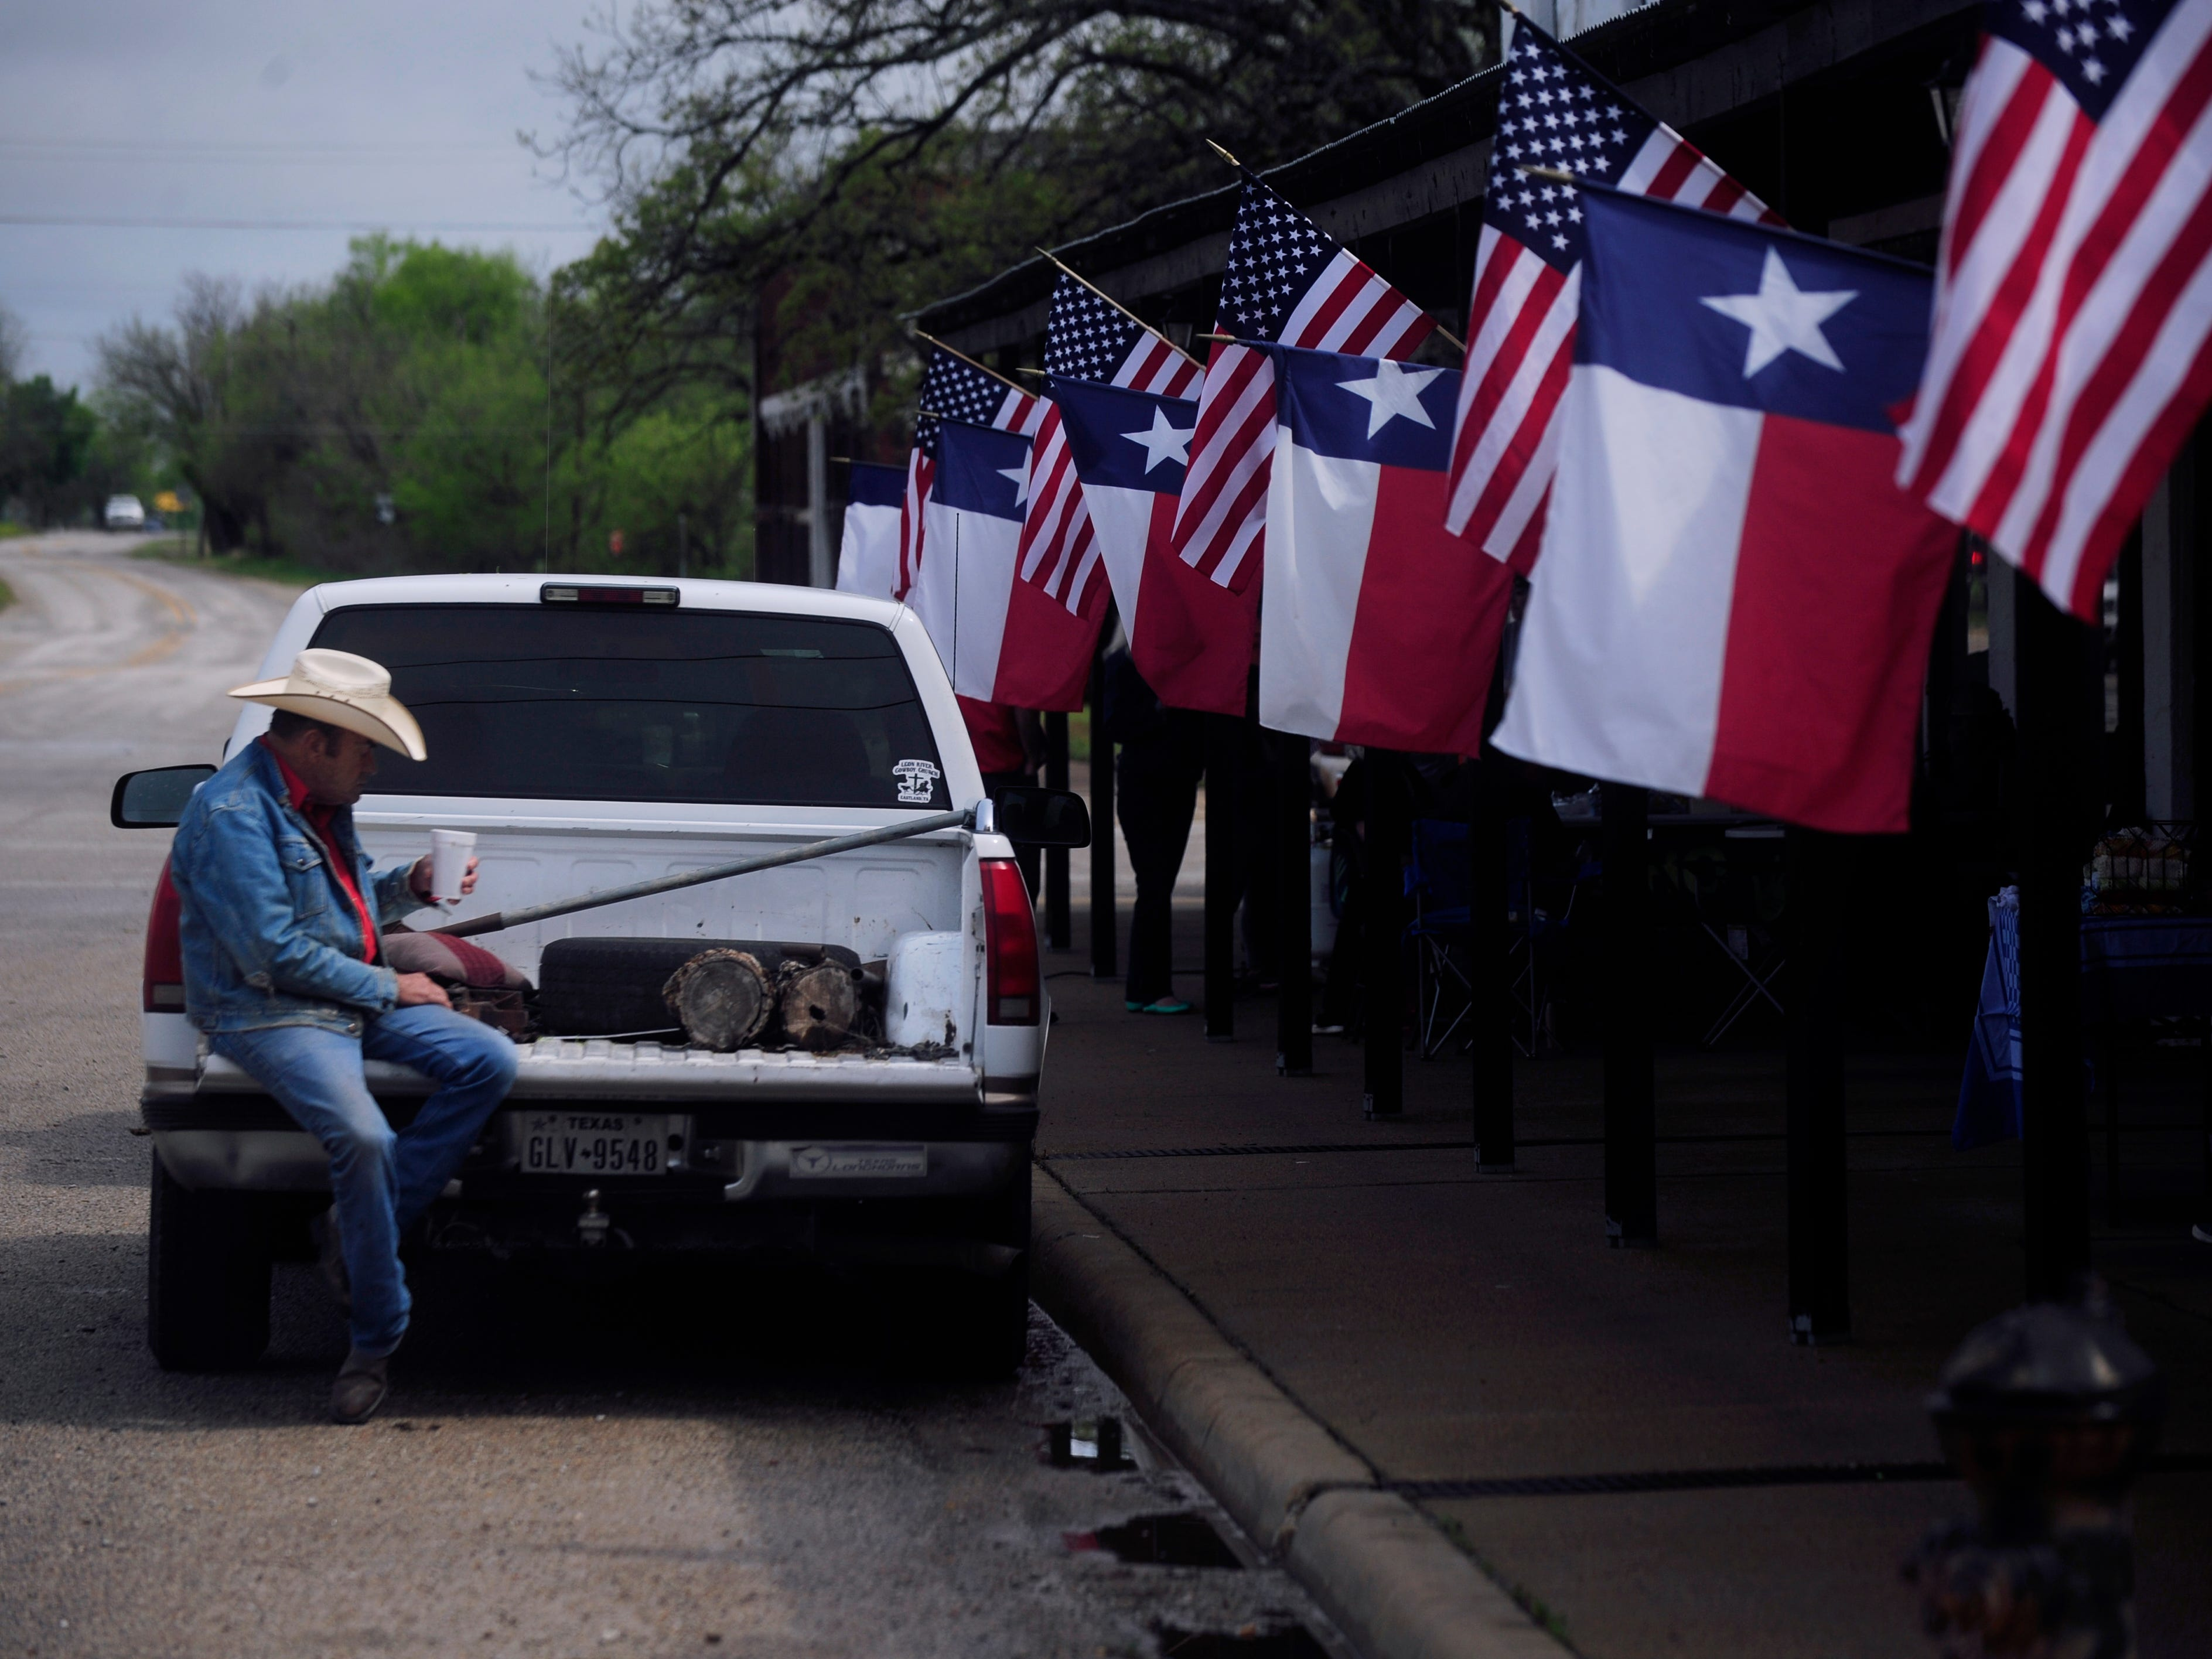 Owen Brackeen sips coffee on the tailgate of a pickup on N. Austin St. in Ranger Saturday April 6, 2019. The town celebrated 100 years since it's charter with a parade, contests, and live music over the weekend.